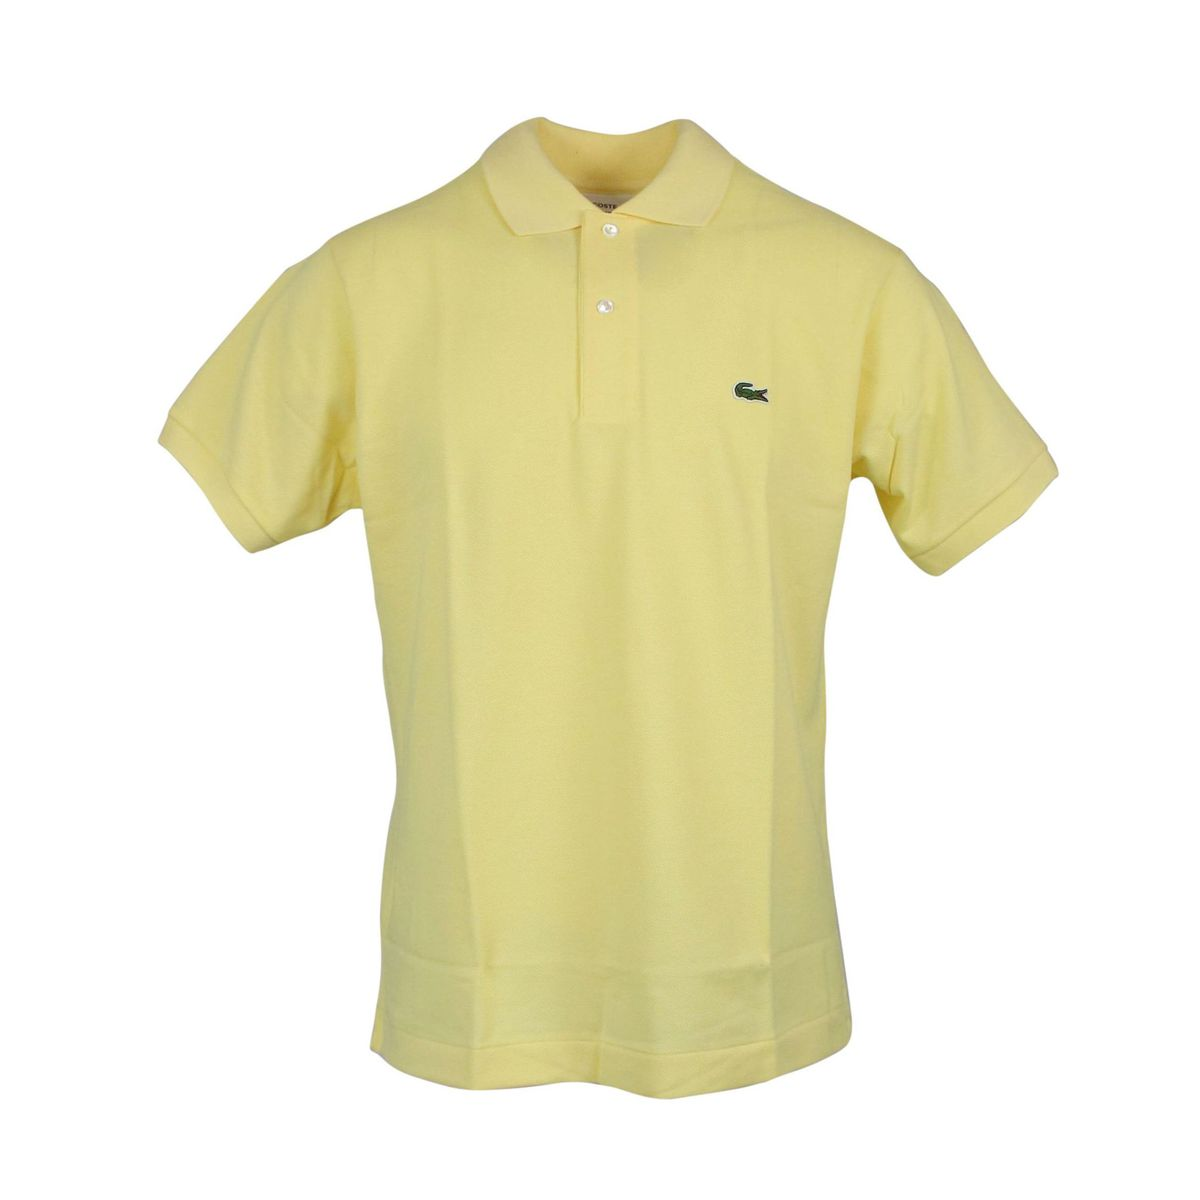 2-button regular fit polo shirt Yellow Lacoste